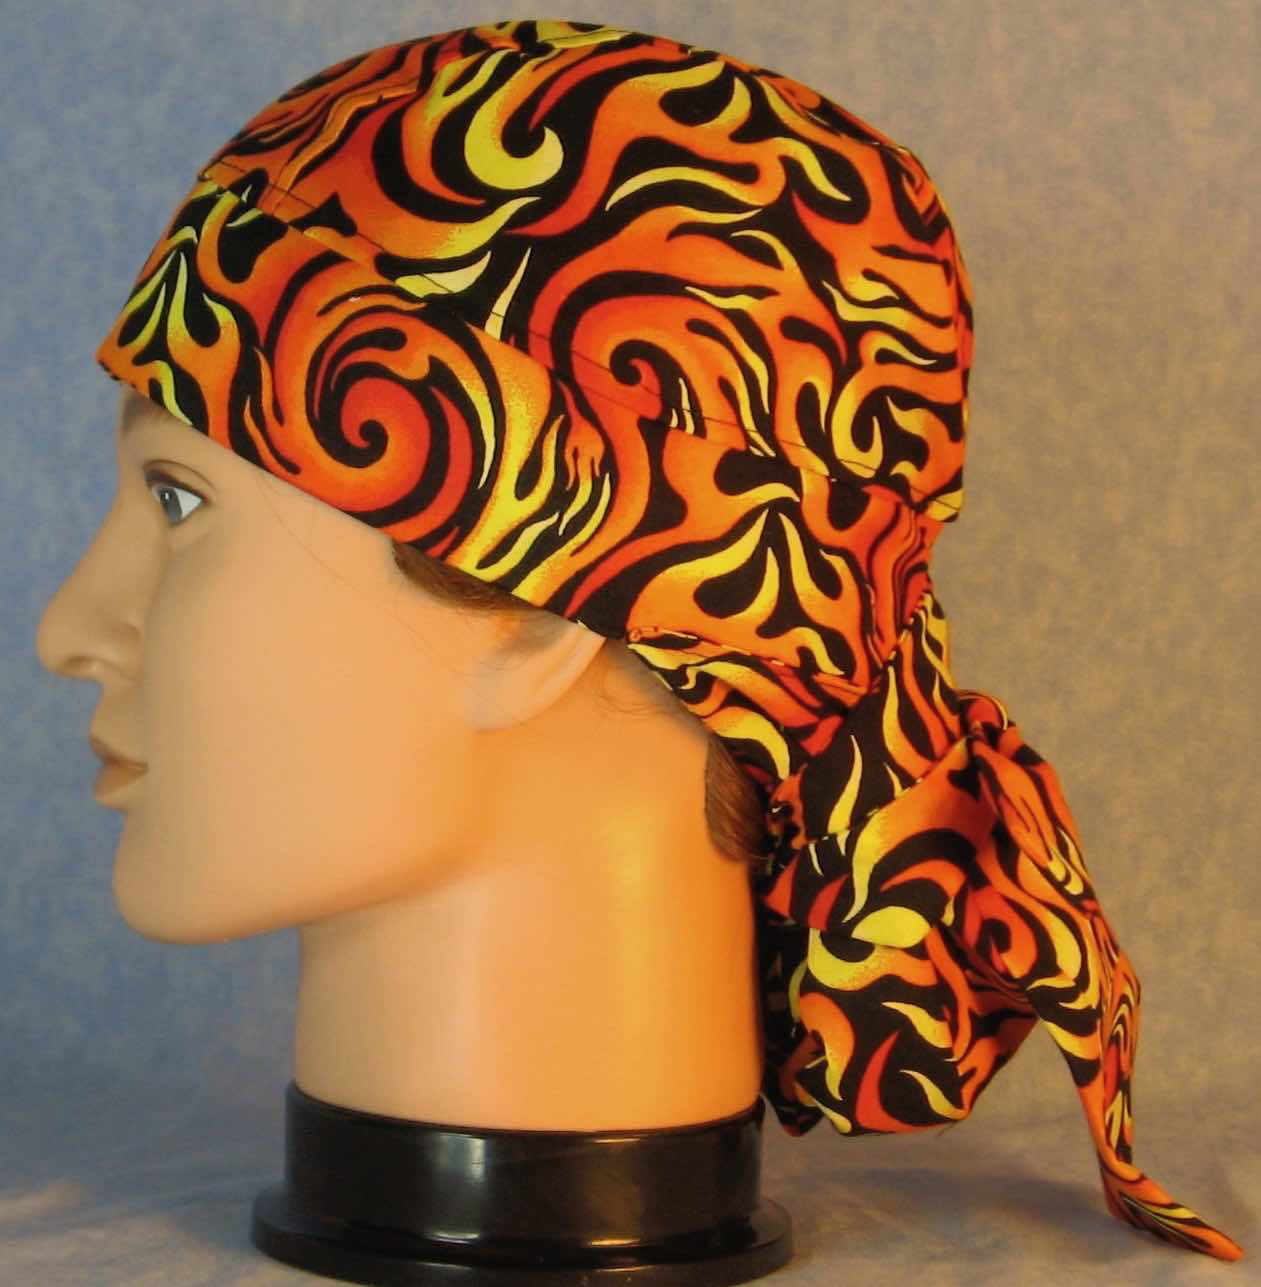 Hair Bag Do Rag in Orange Yellow Flames - Adult M-XL